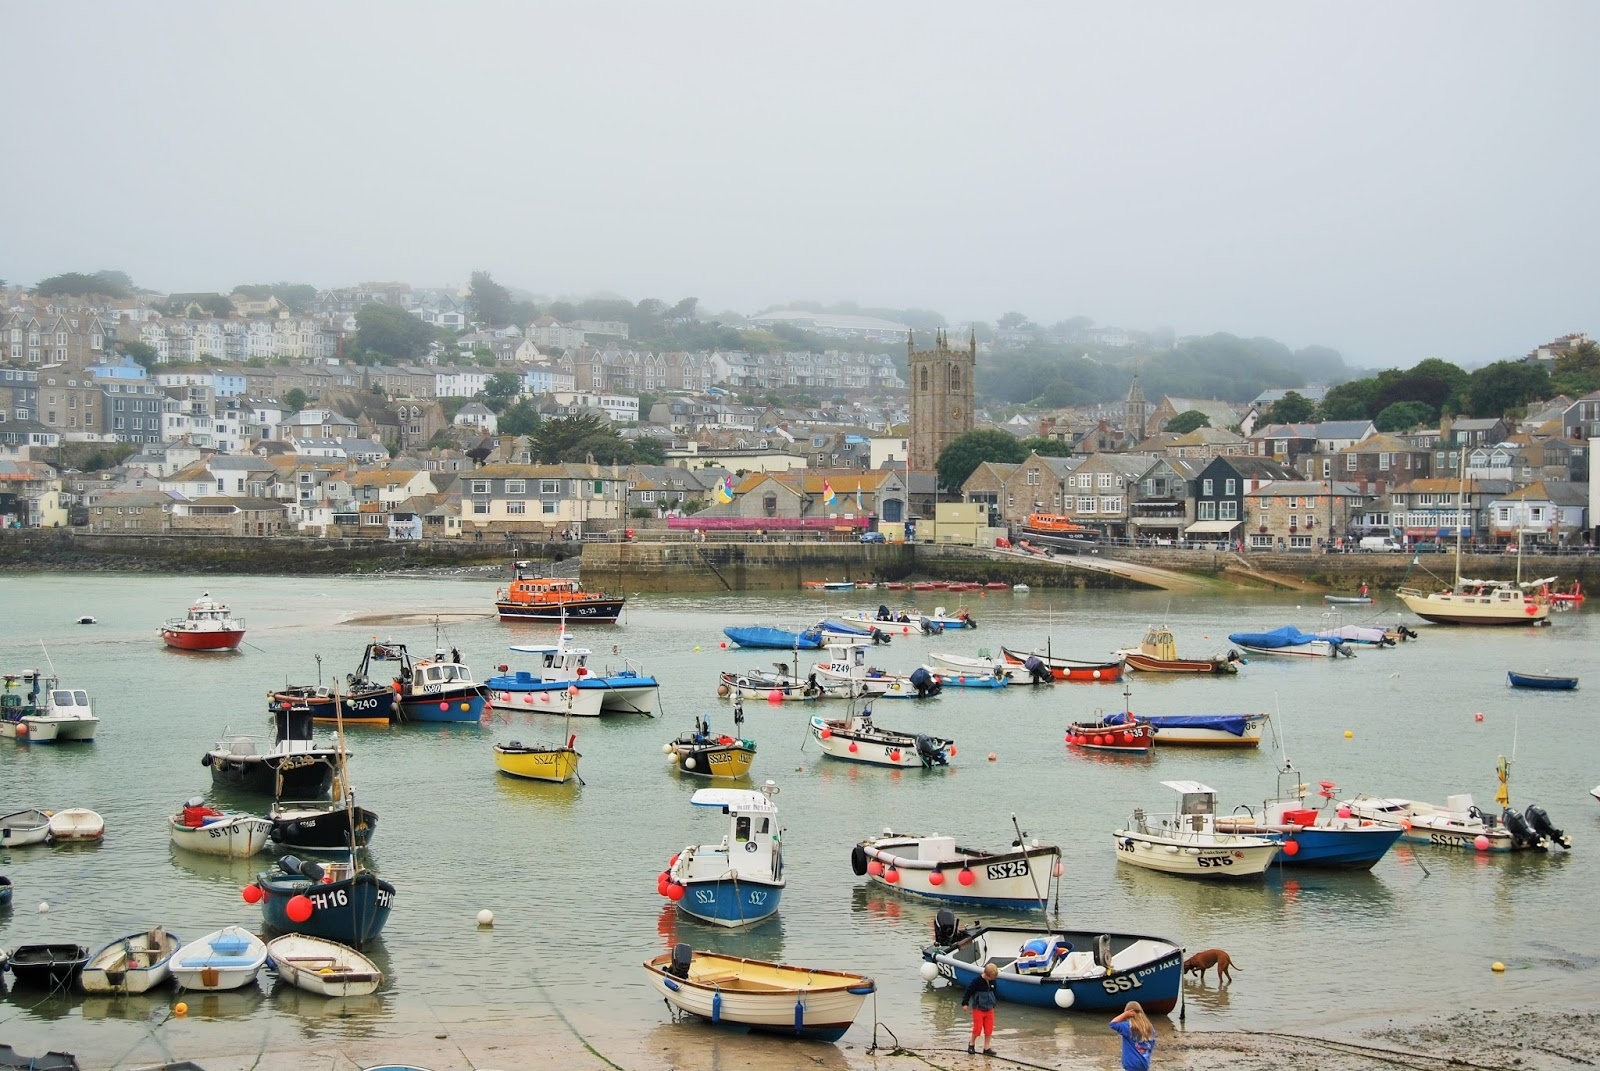 St Ives, Cornwall, photo by Modern Bric a Brac